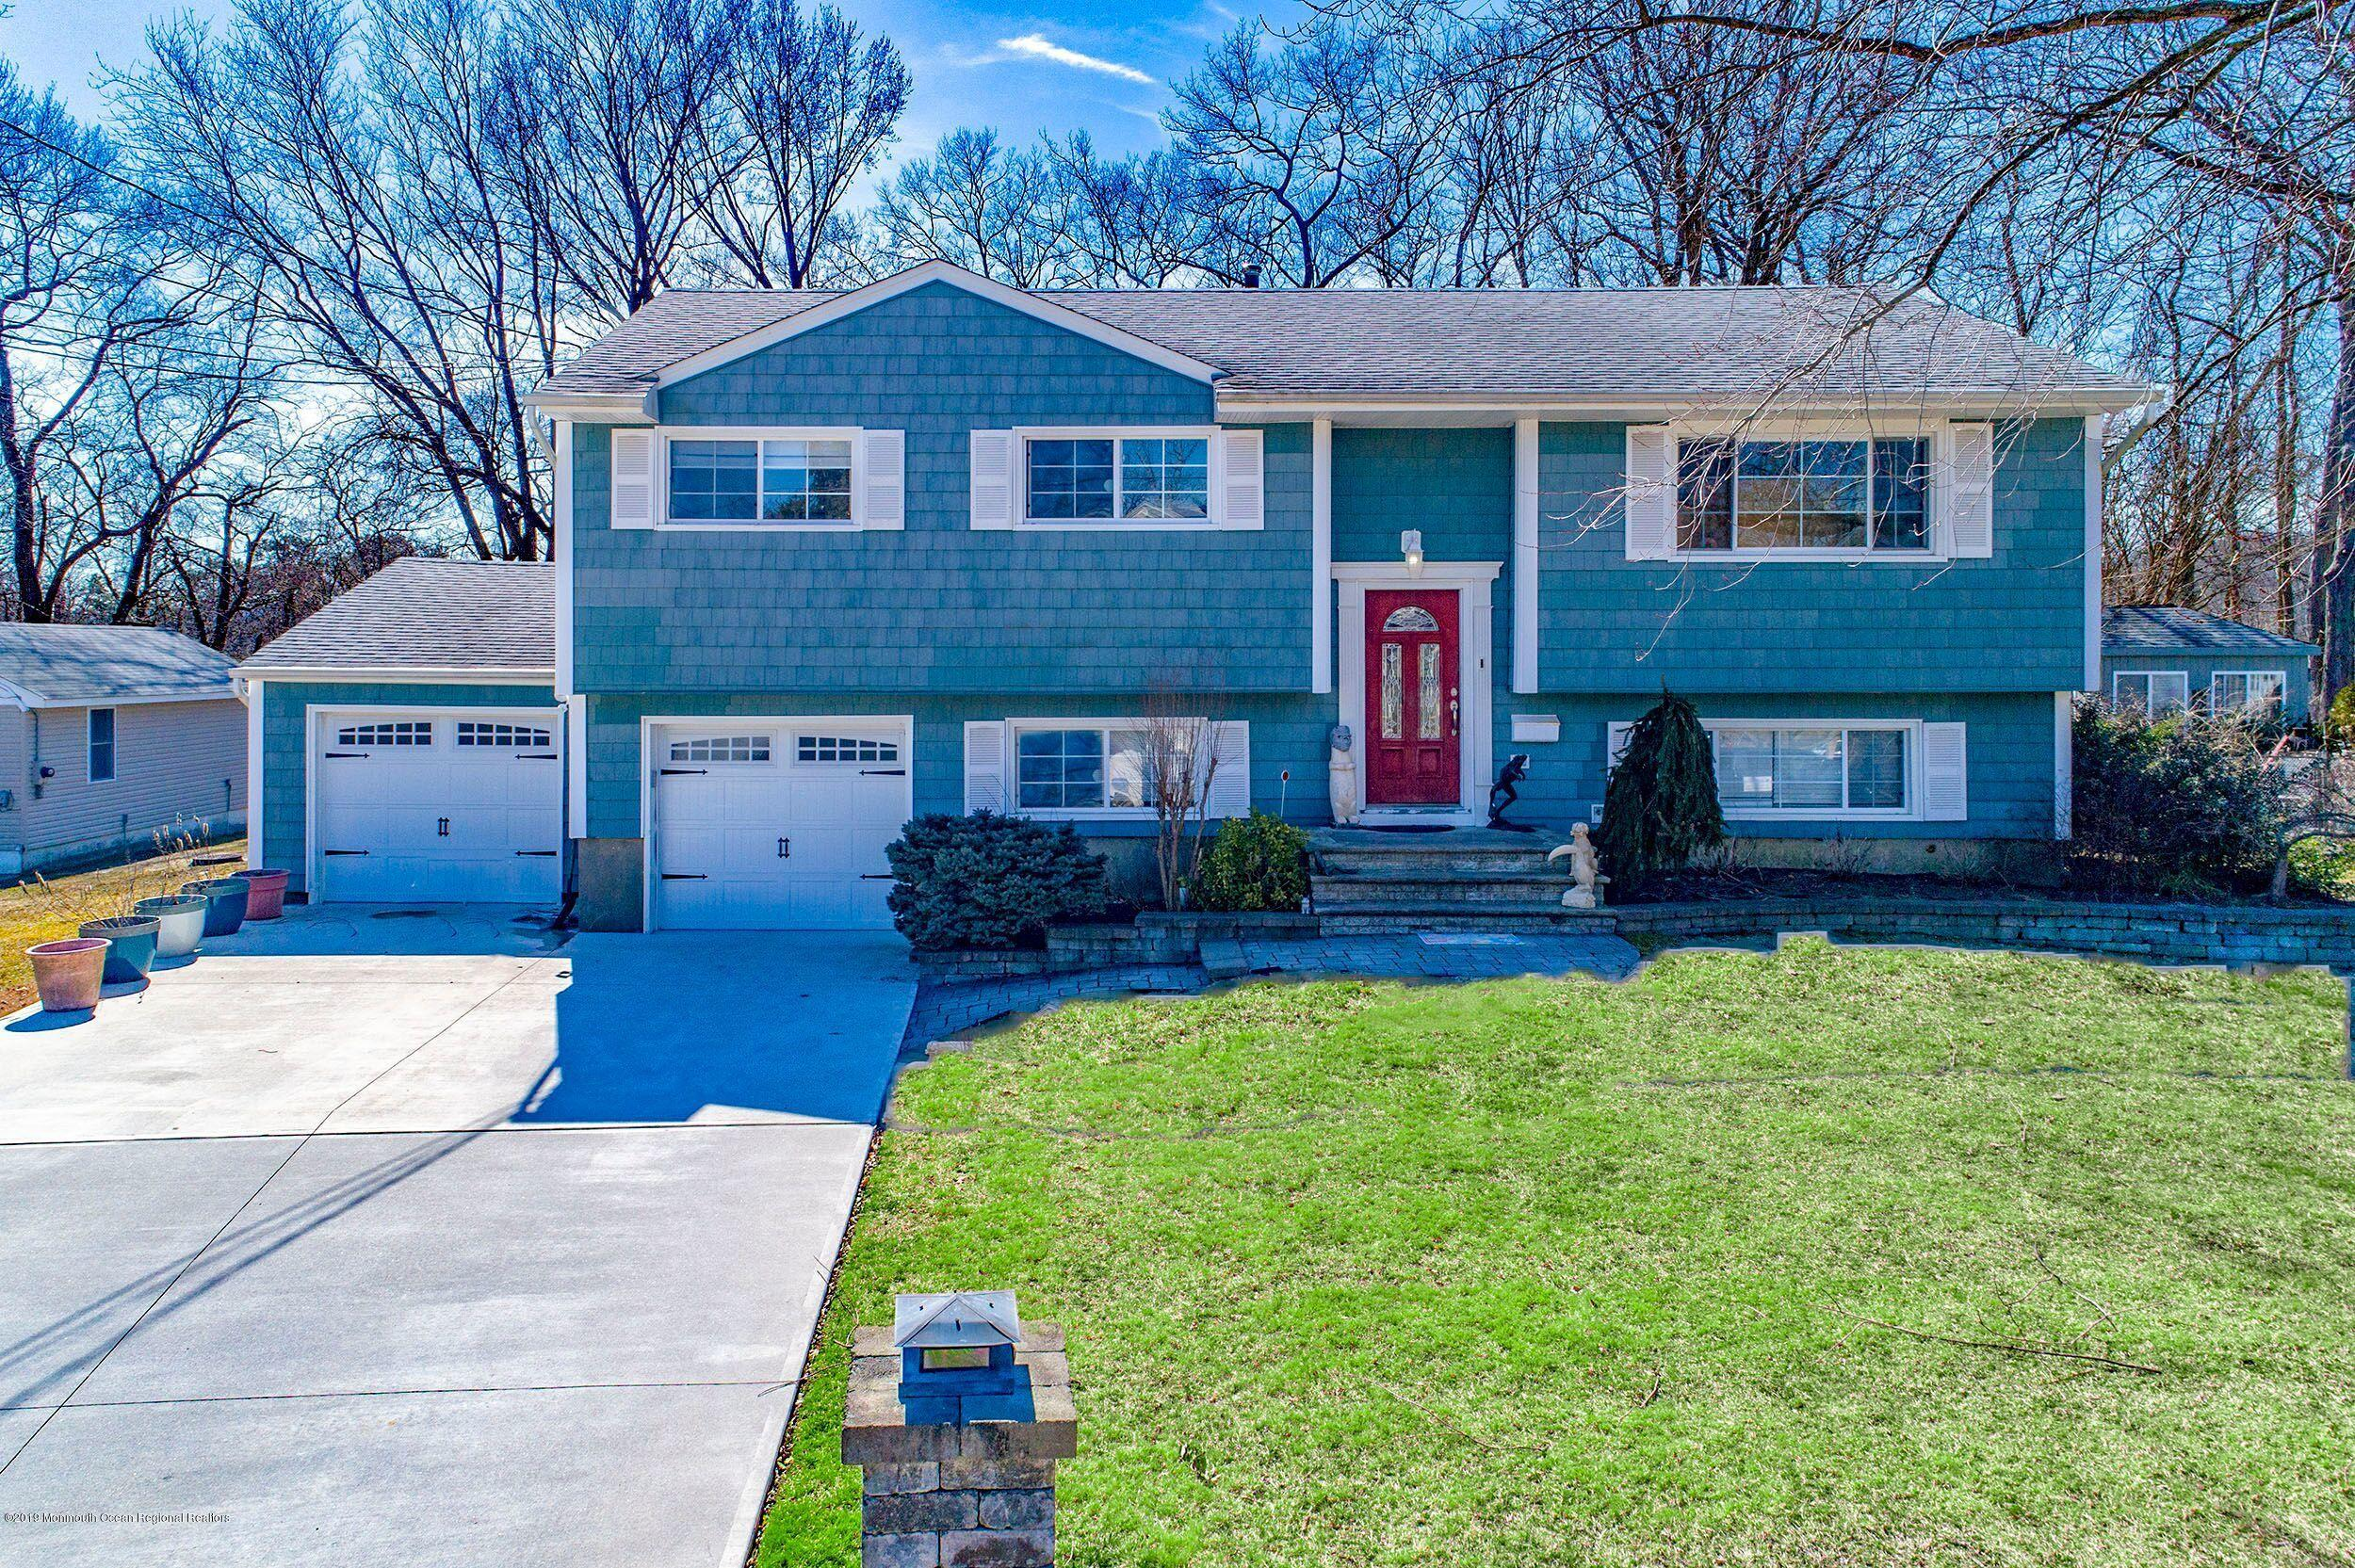 7 Overbrook Place, Neptune City, NJ 07753 - SOLD LISTING, MLS # 21909872 |  Crossroads Realty